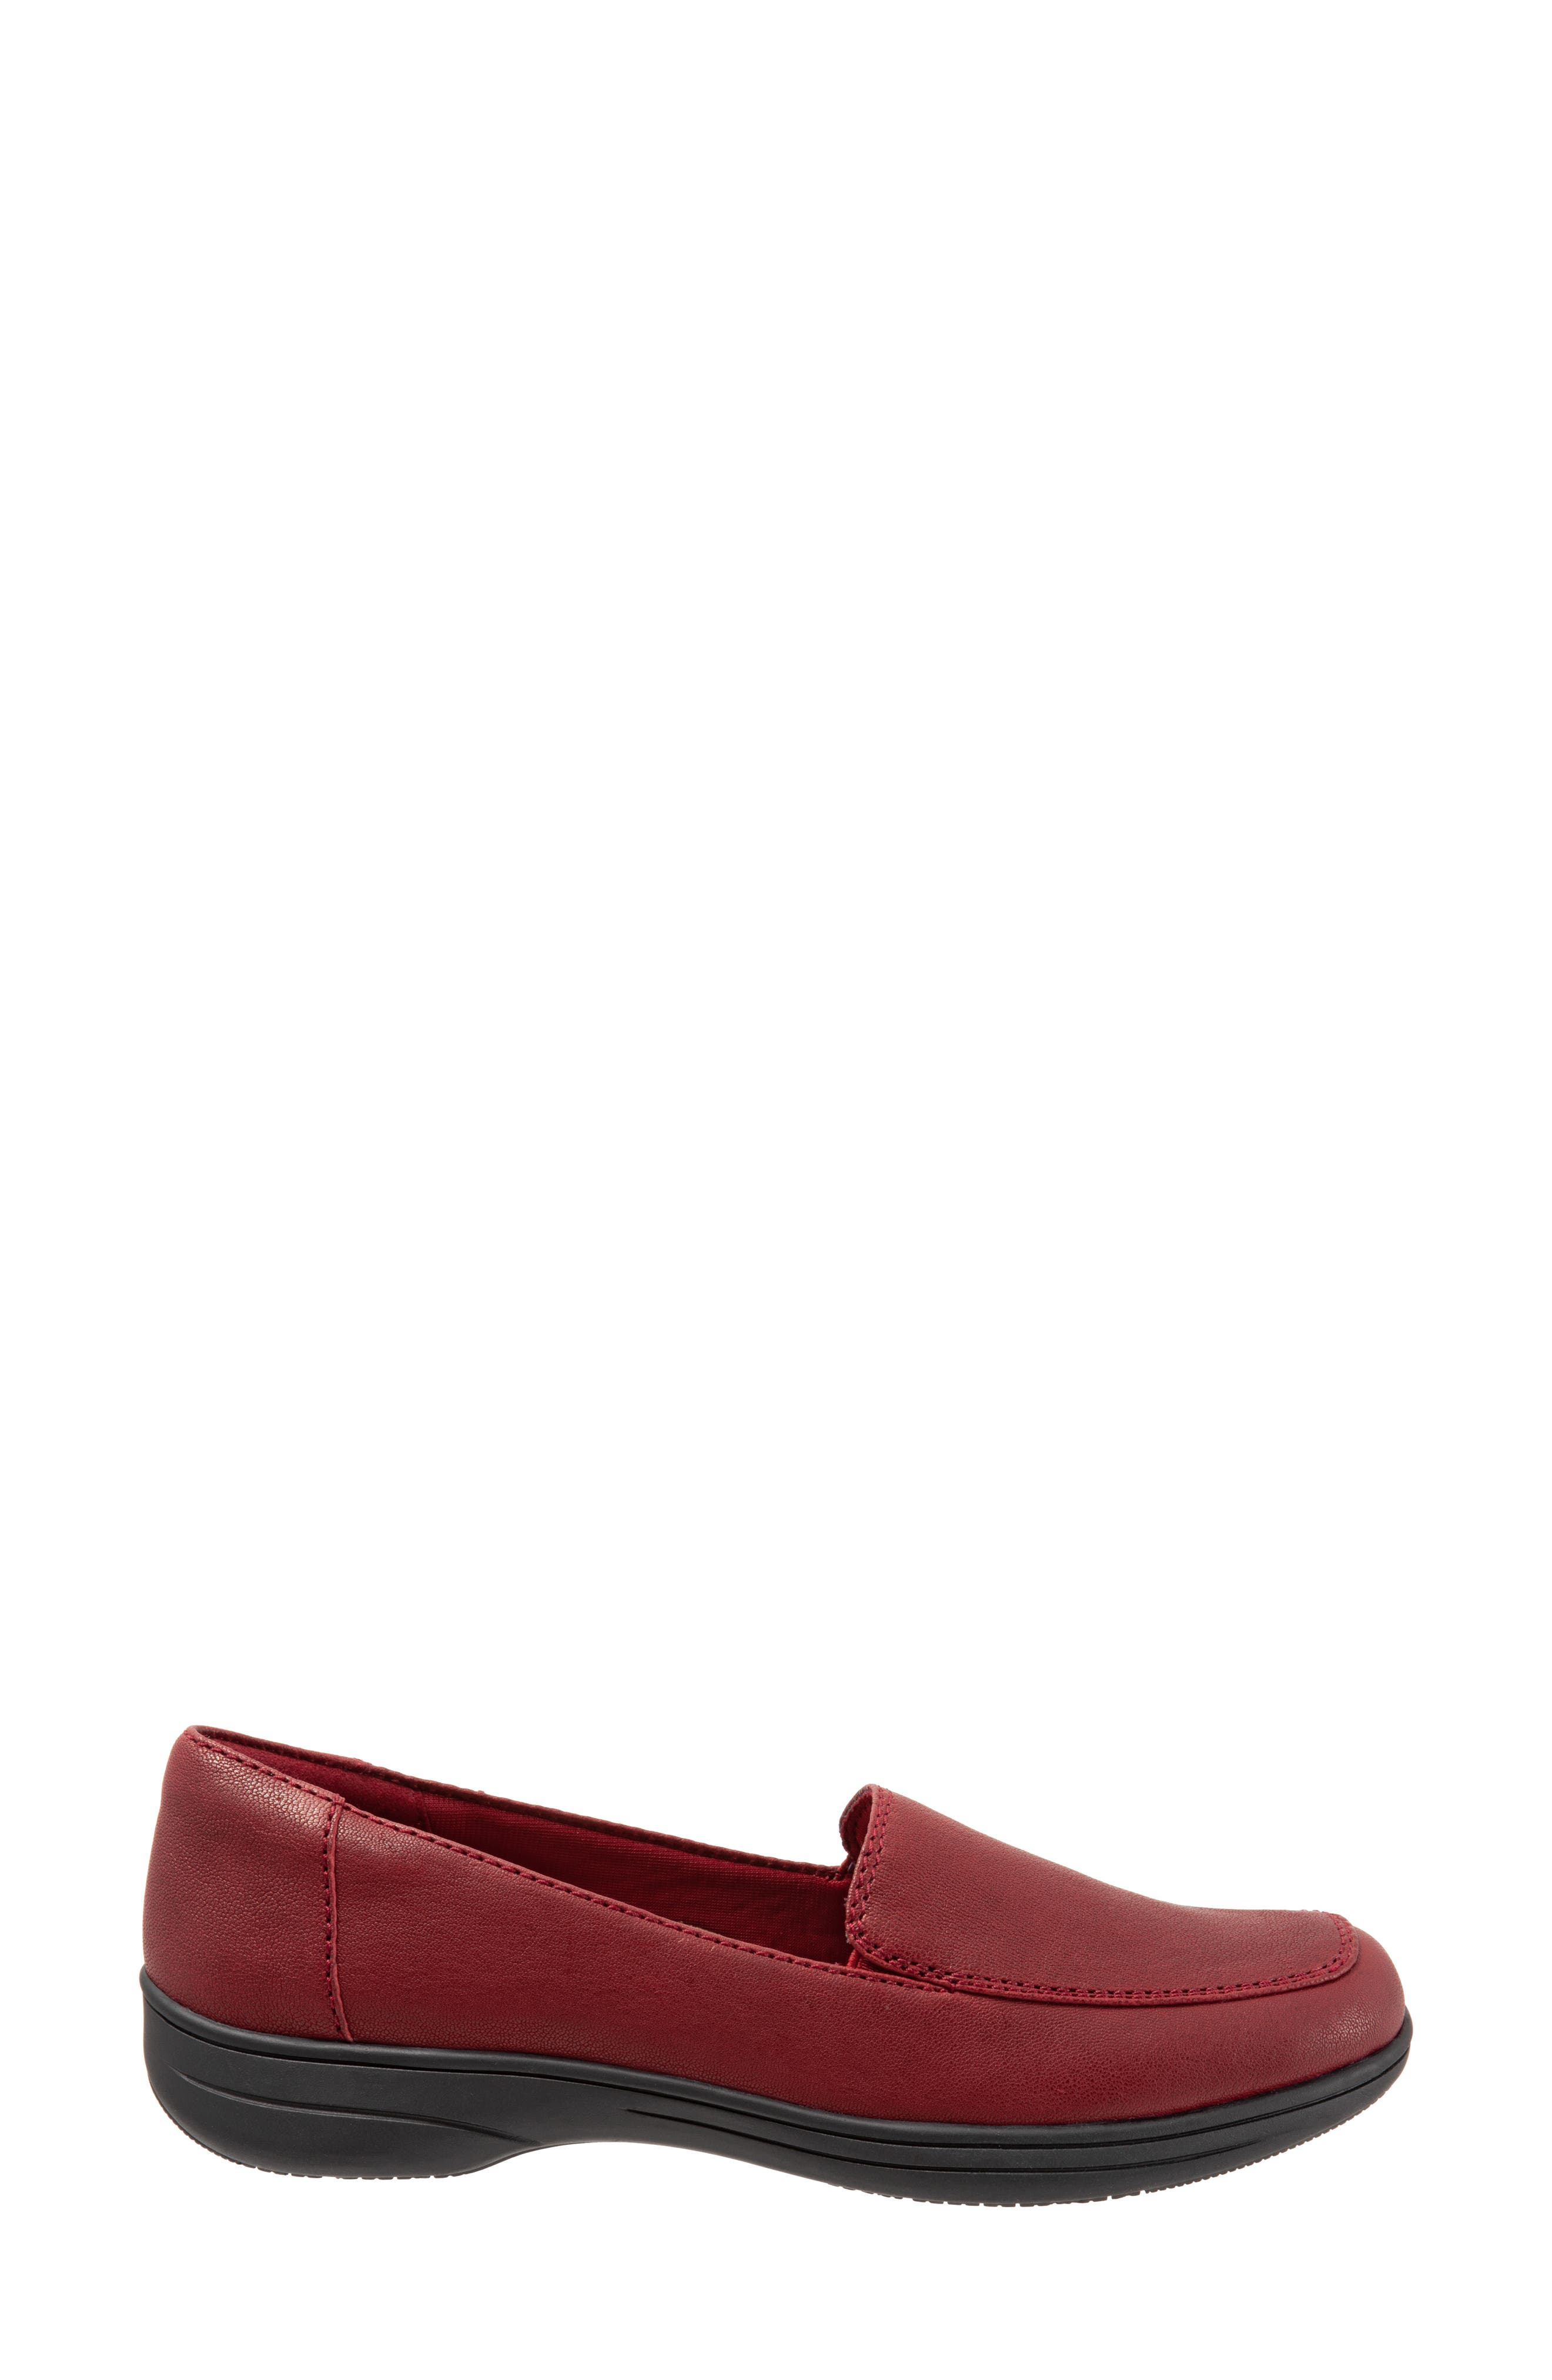 Jacob Loafer,                             Alternate thumbnail 3, color,                             DARK RED LEATHER